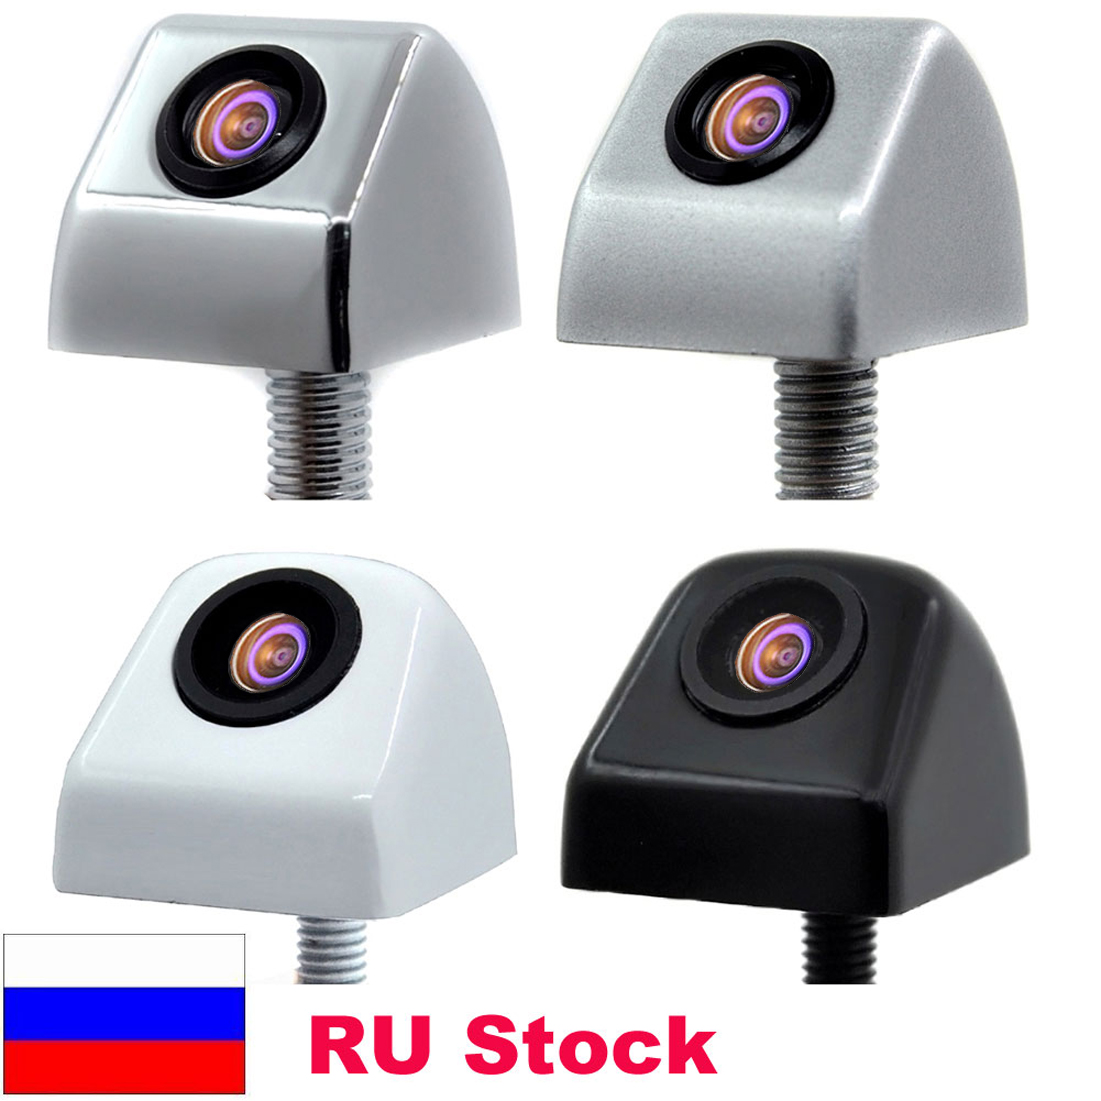 Factory Price CCD CCD Car Rearview Camera Waterproof NIGHT Wide Angle Luxur car rear view camera reversing Backup Camera